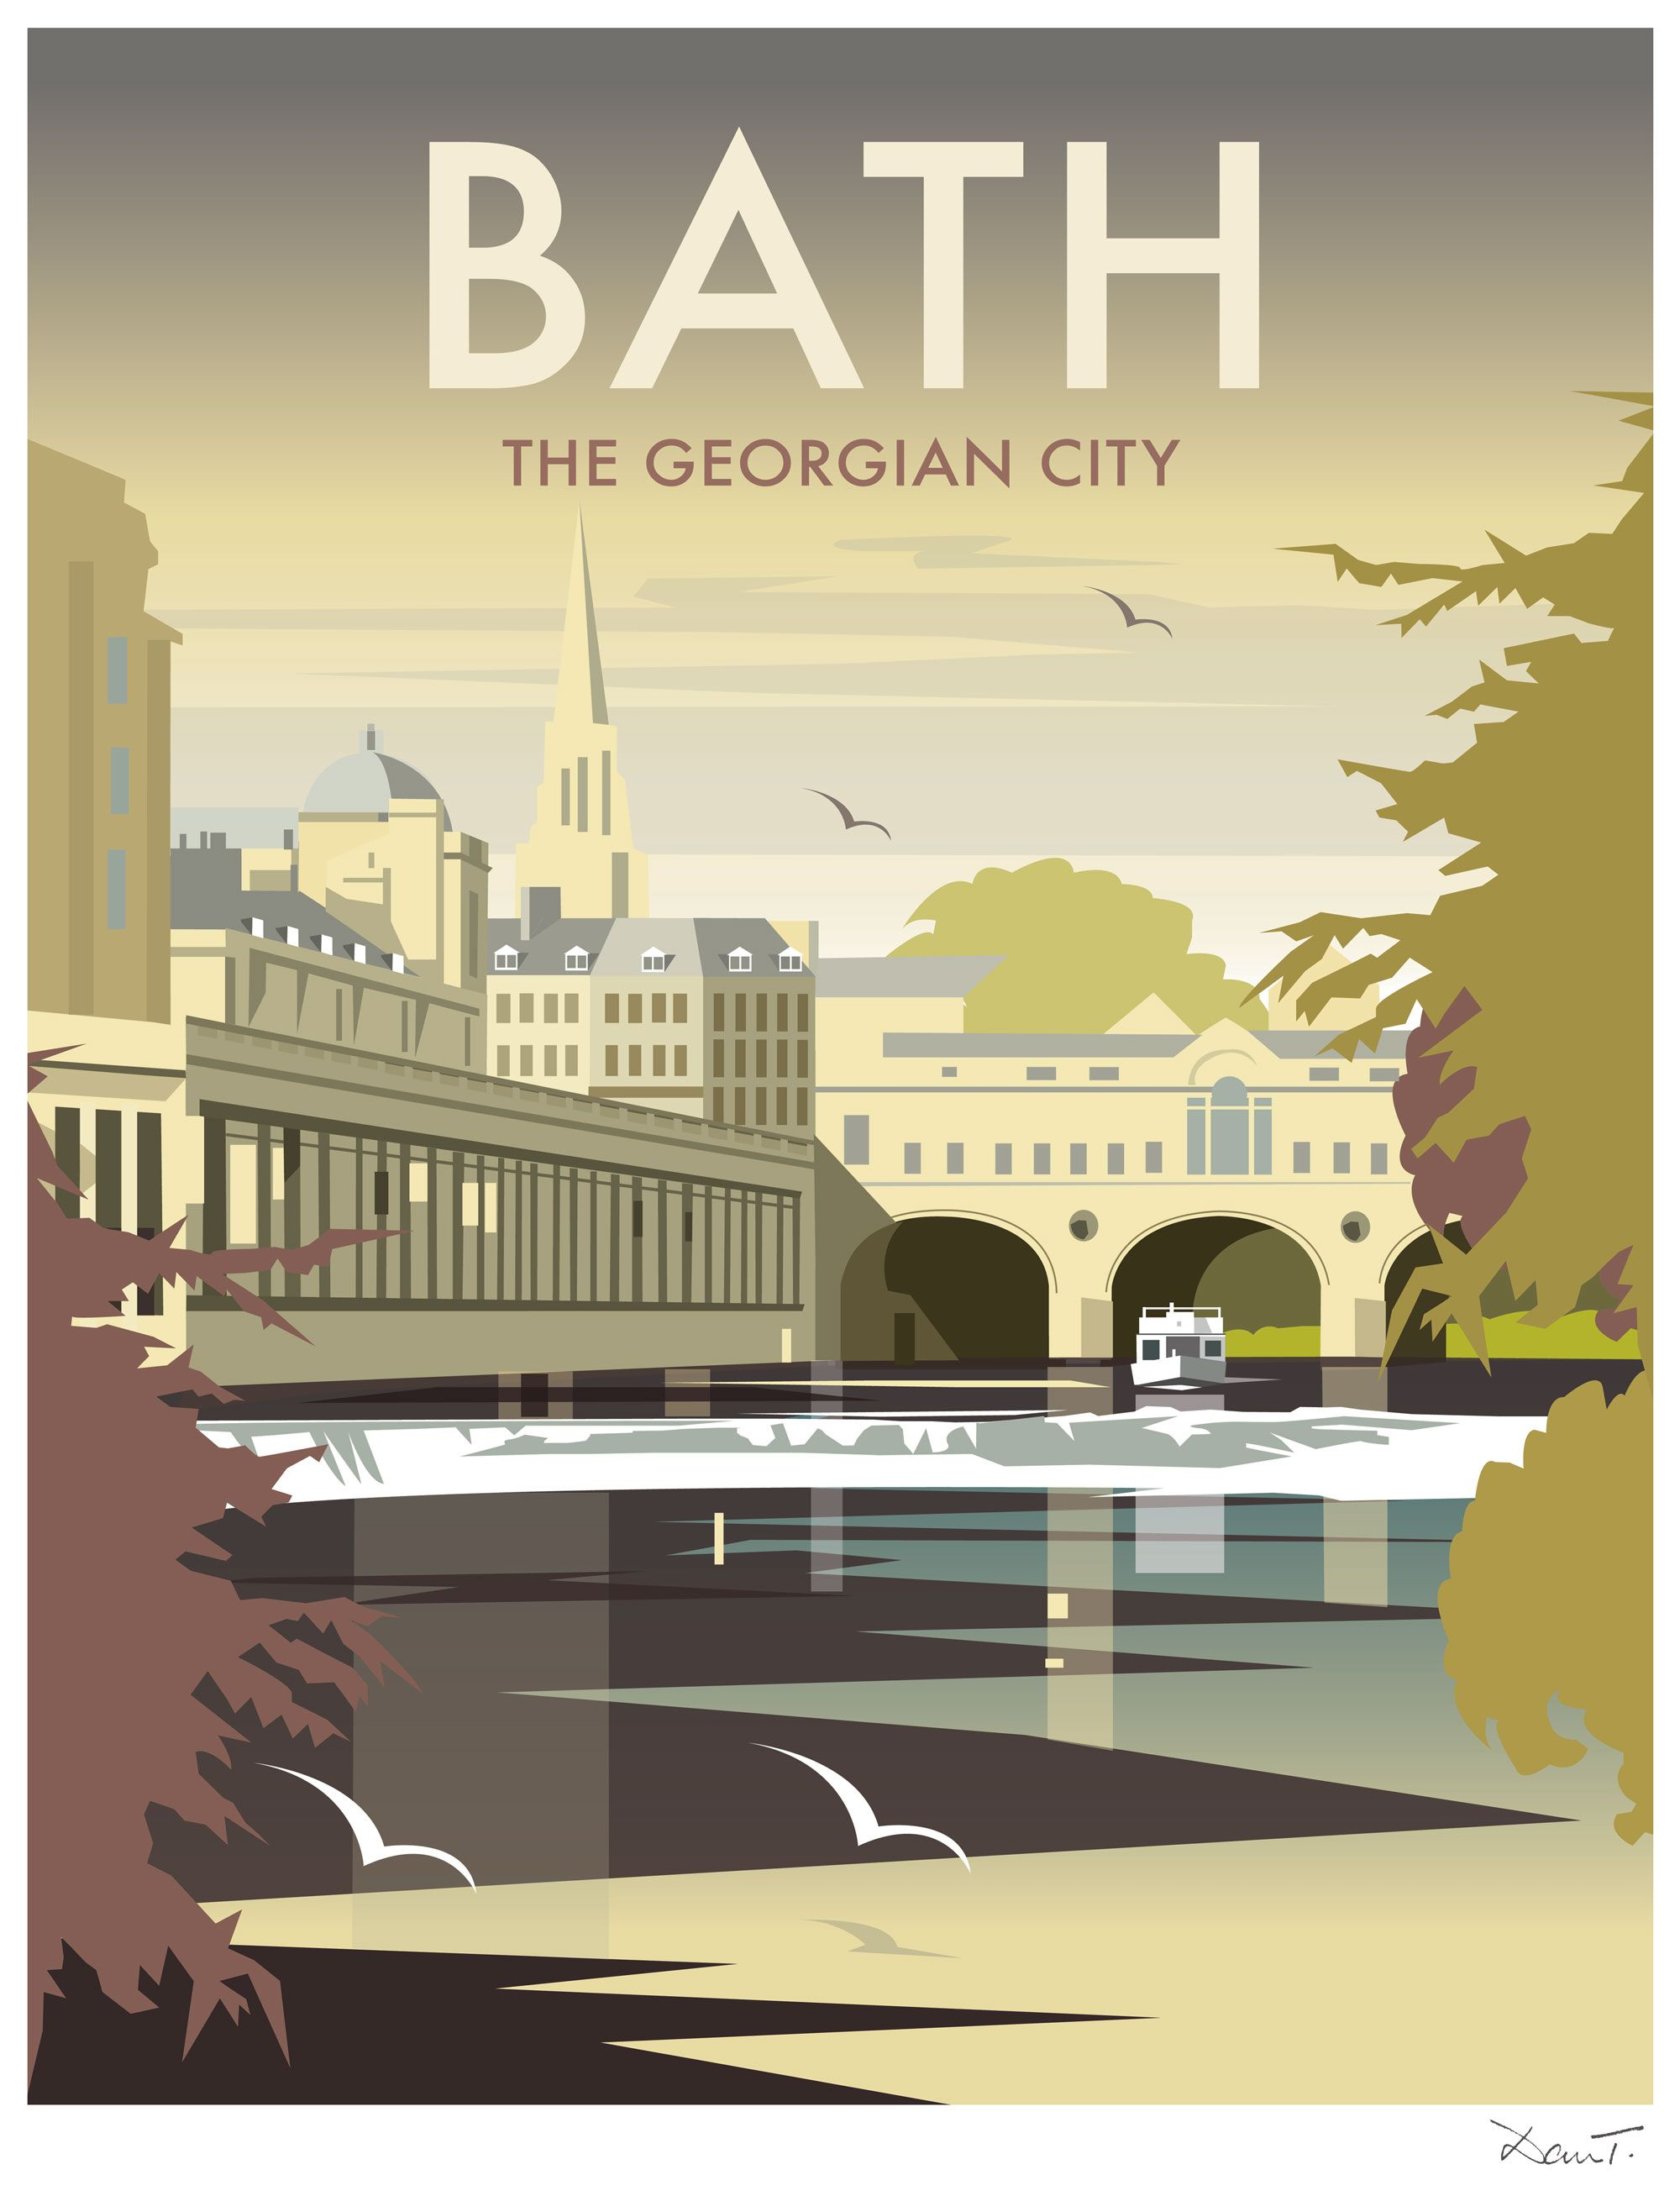 Bath Framed Art Print By Dave Thompson Whistlefish Galleries Travel Prints Travel Posters Posters Uk